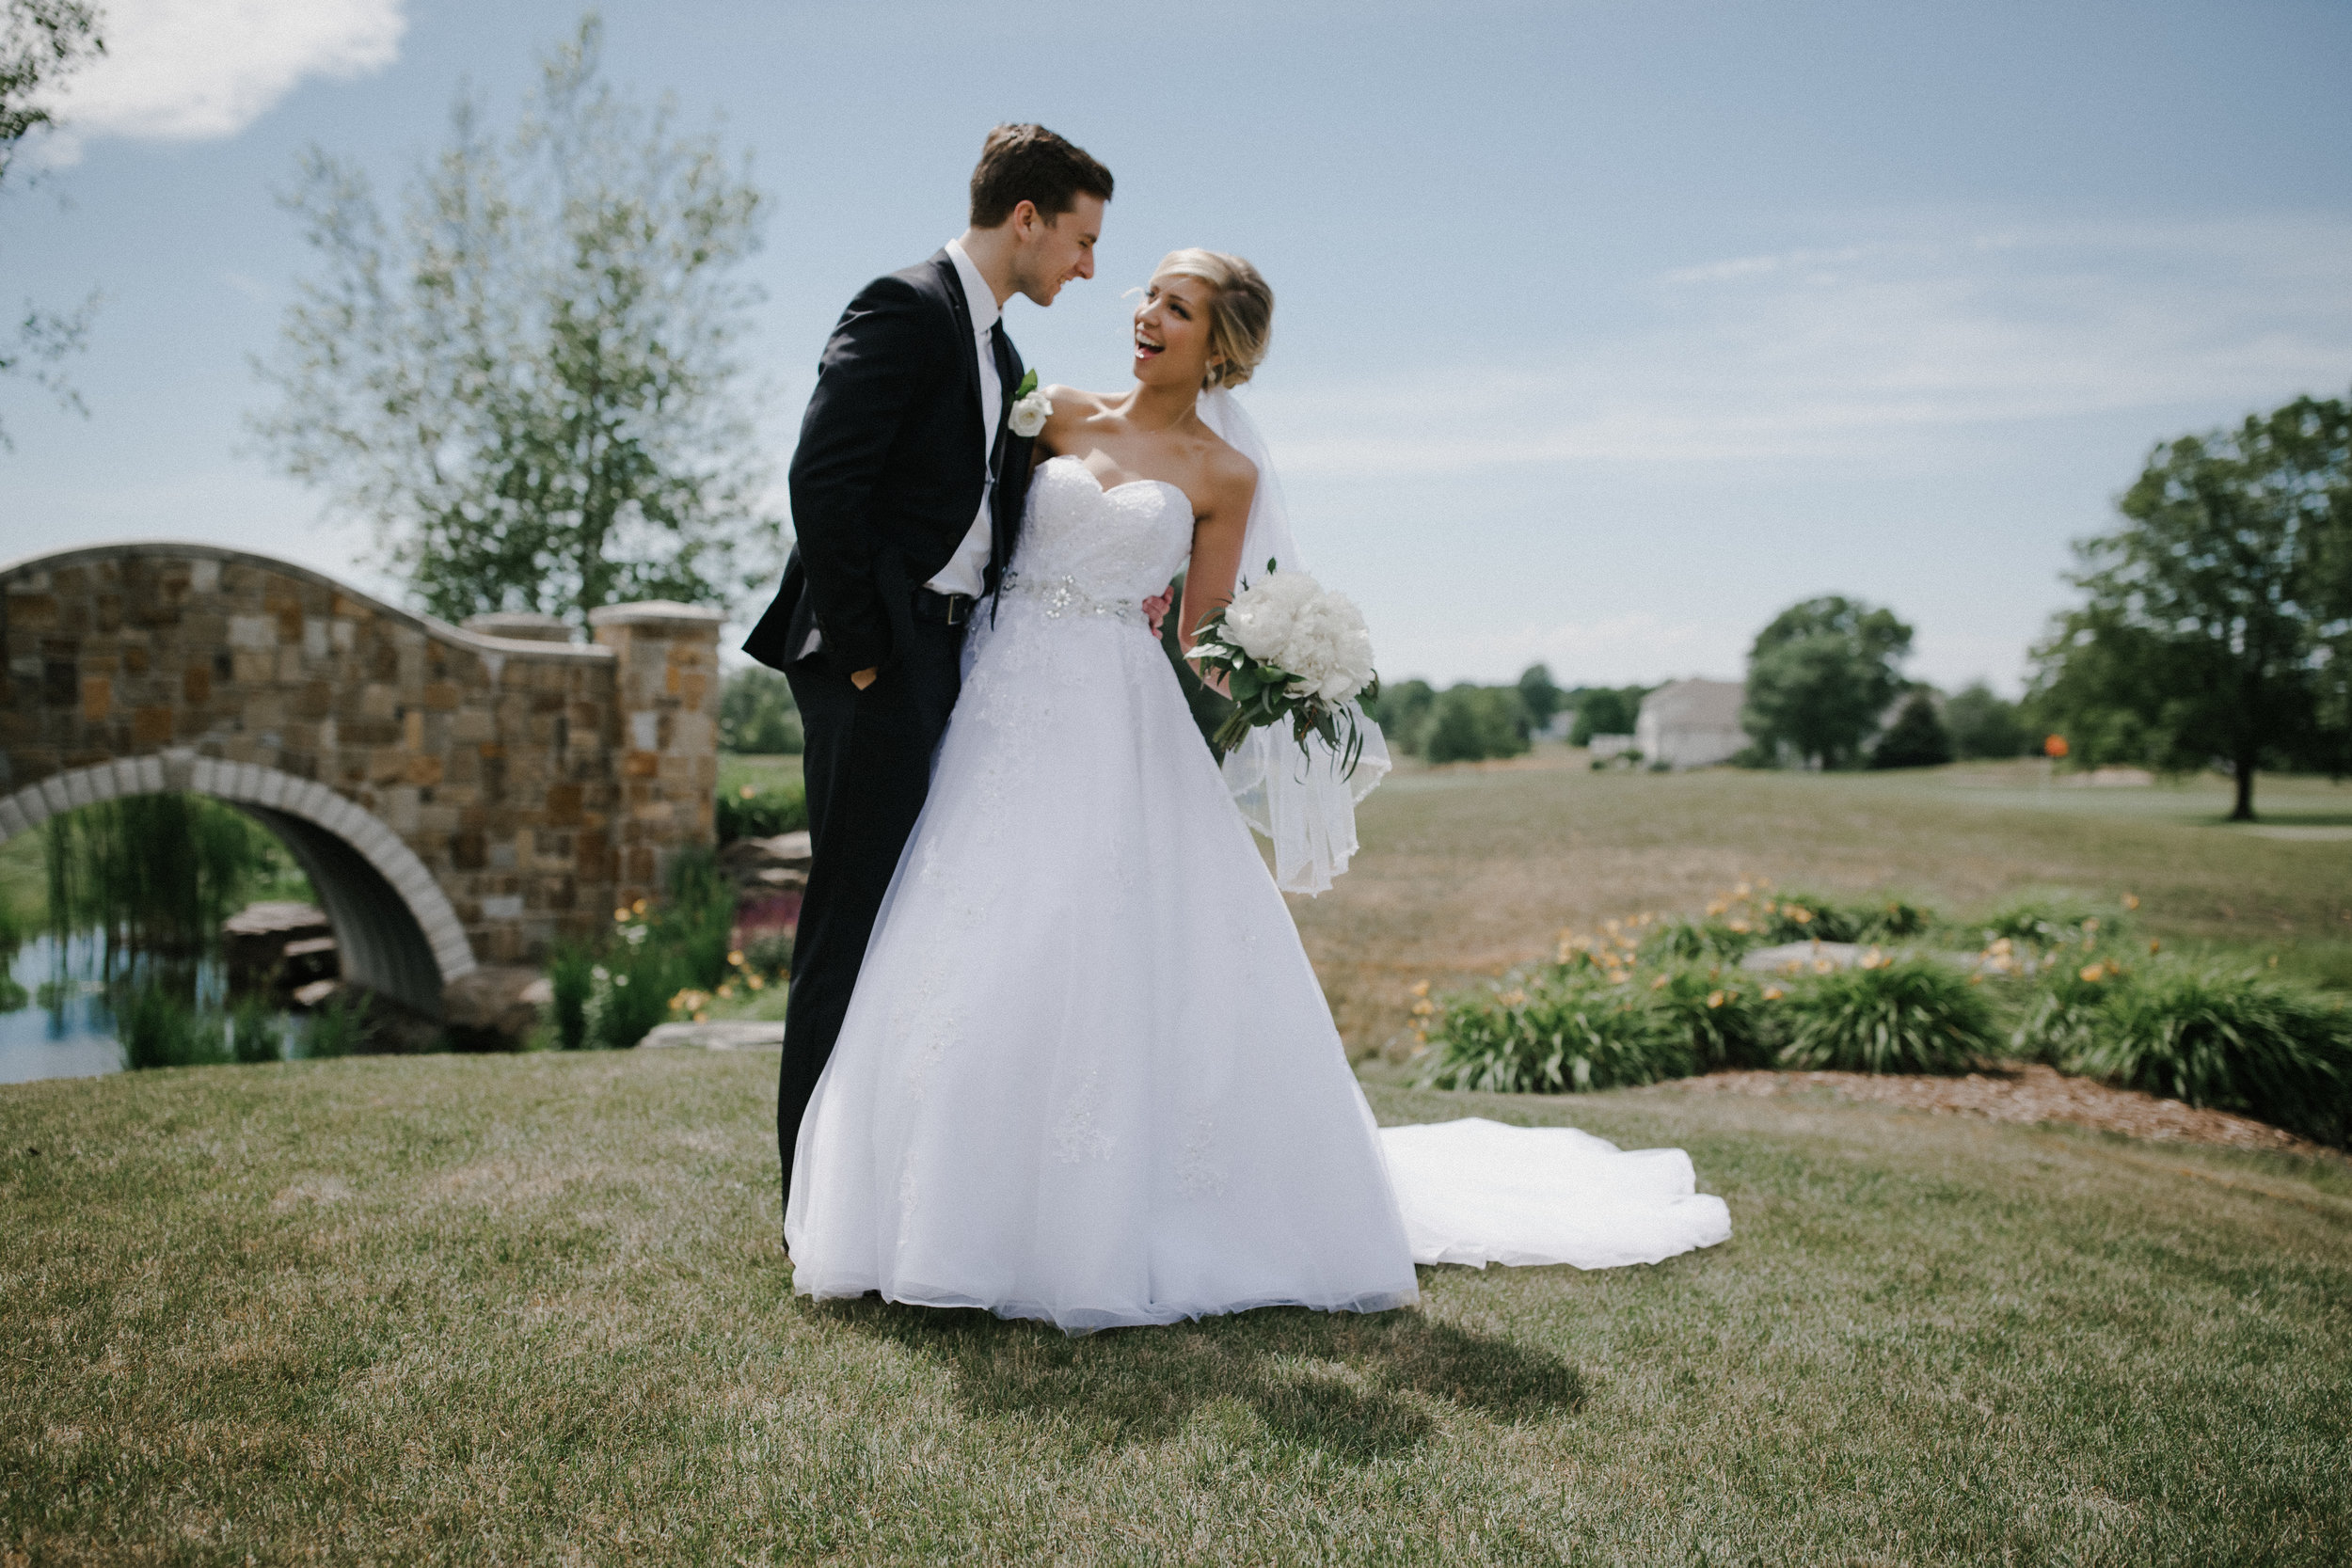 Cinematography-Photography-Grand-Rapids-Chicago-Shadow-Shine-Pictures-West-Michigan-Videography-Wedding-Anna-Bryce-Sack